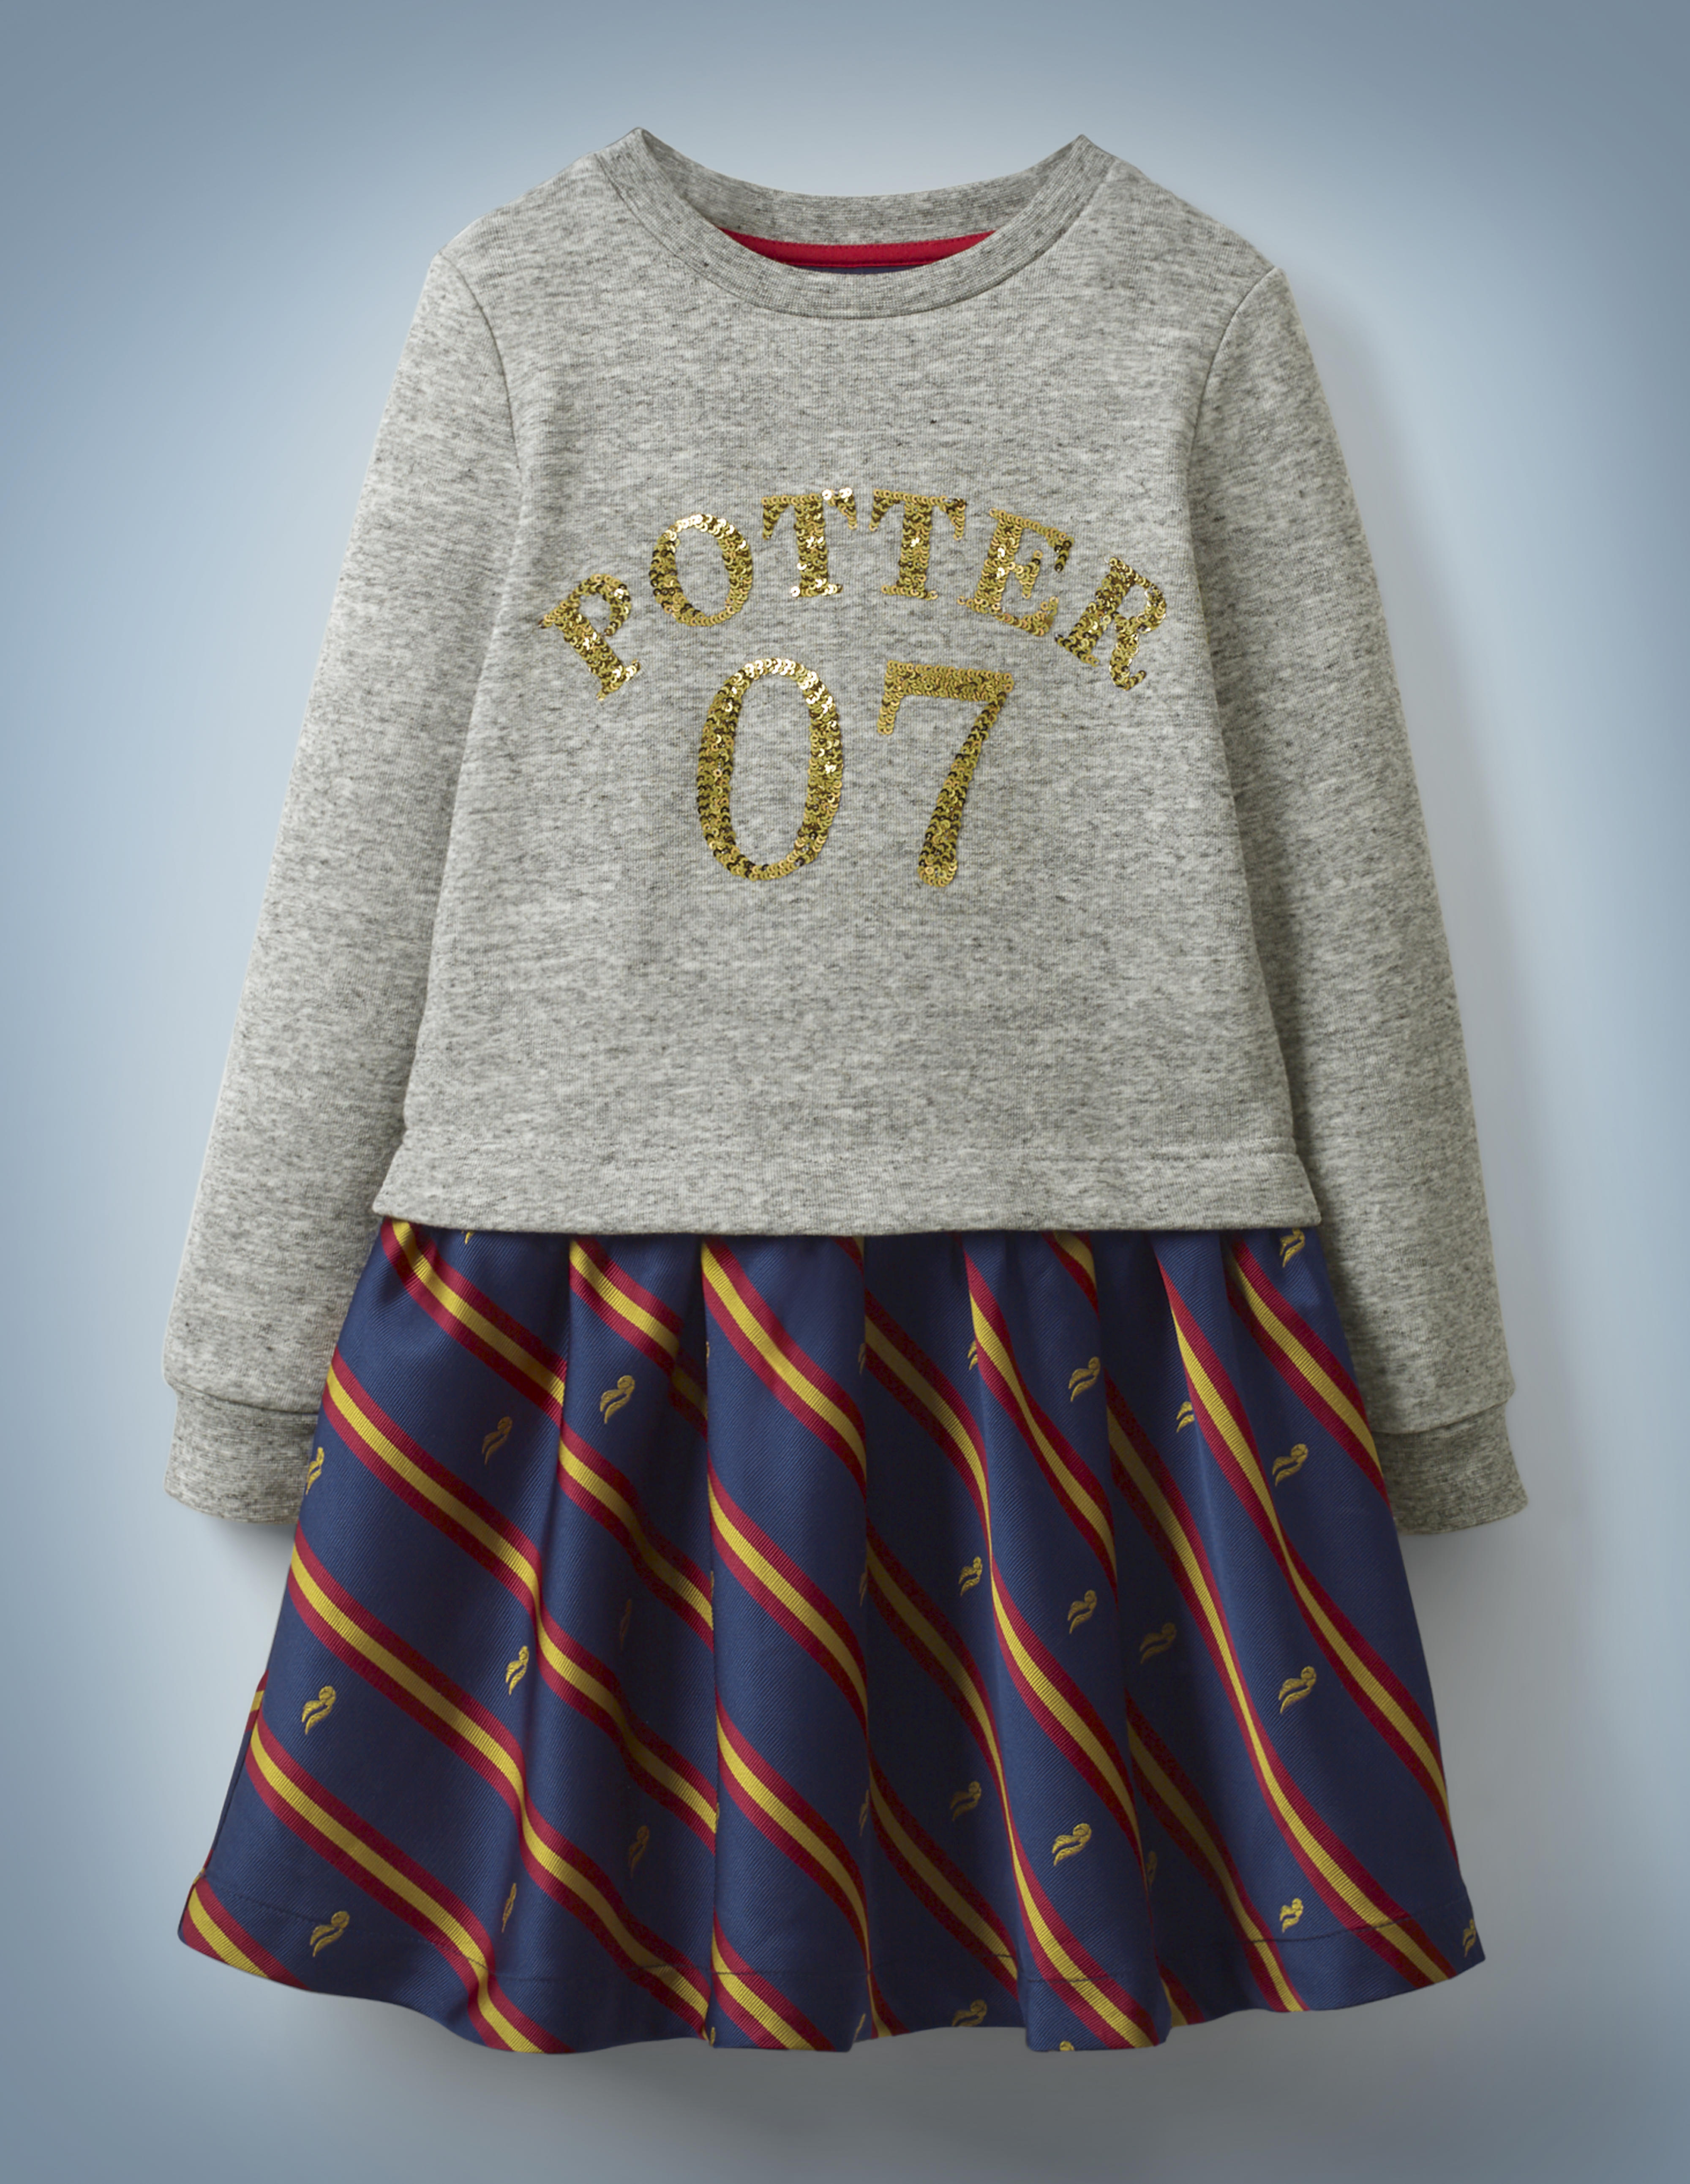 """The Mini Boden Sequin Seeker Dress resembles a skirt and top and features a heather gray, long-sleeved top with gold sequins reading """"Potter 07"""" and blue skirt bottom with red-and-gold stripes and Golden Snitches. It retails at £35."""